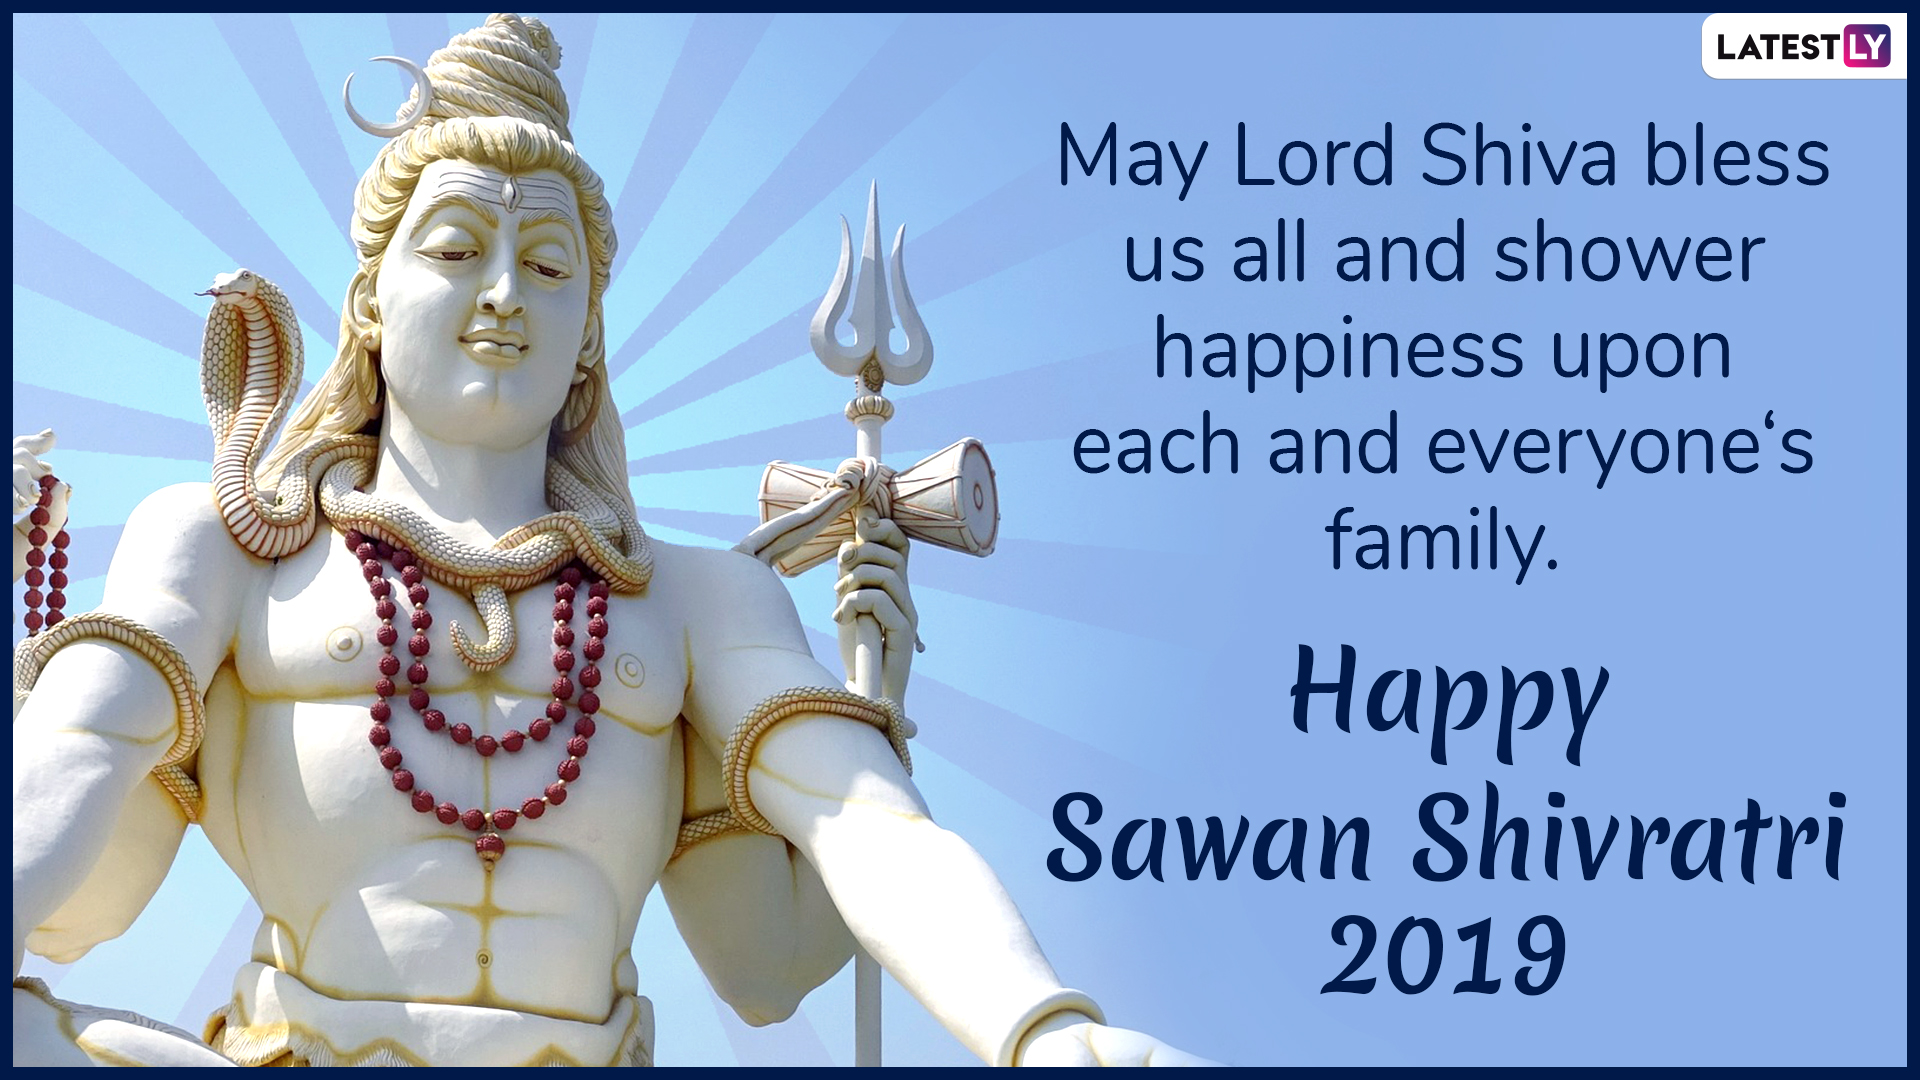 Sawan Shivratri 2019 Wishes and Messages: Facebook Greetings, Lord